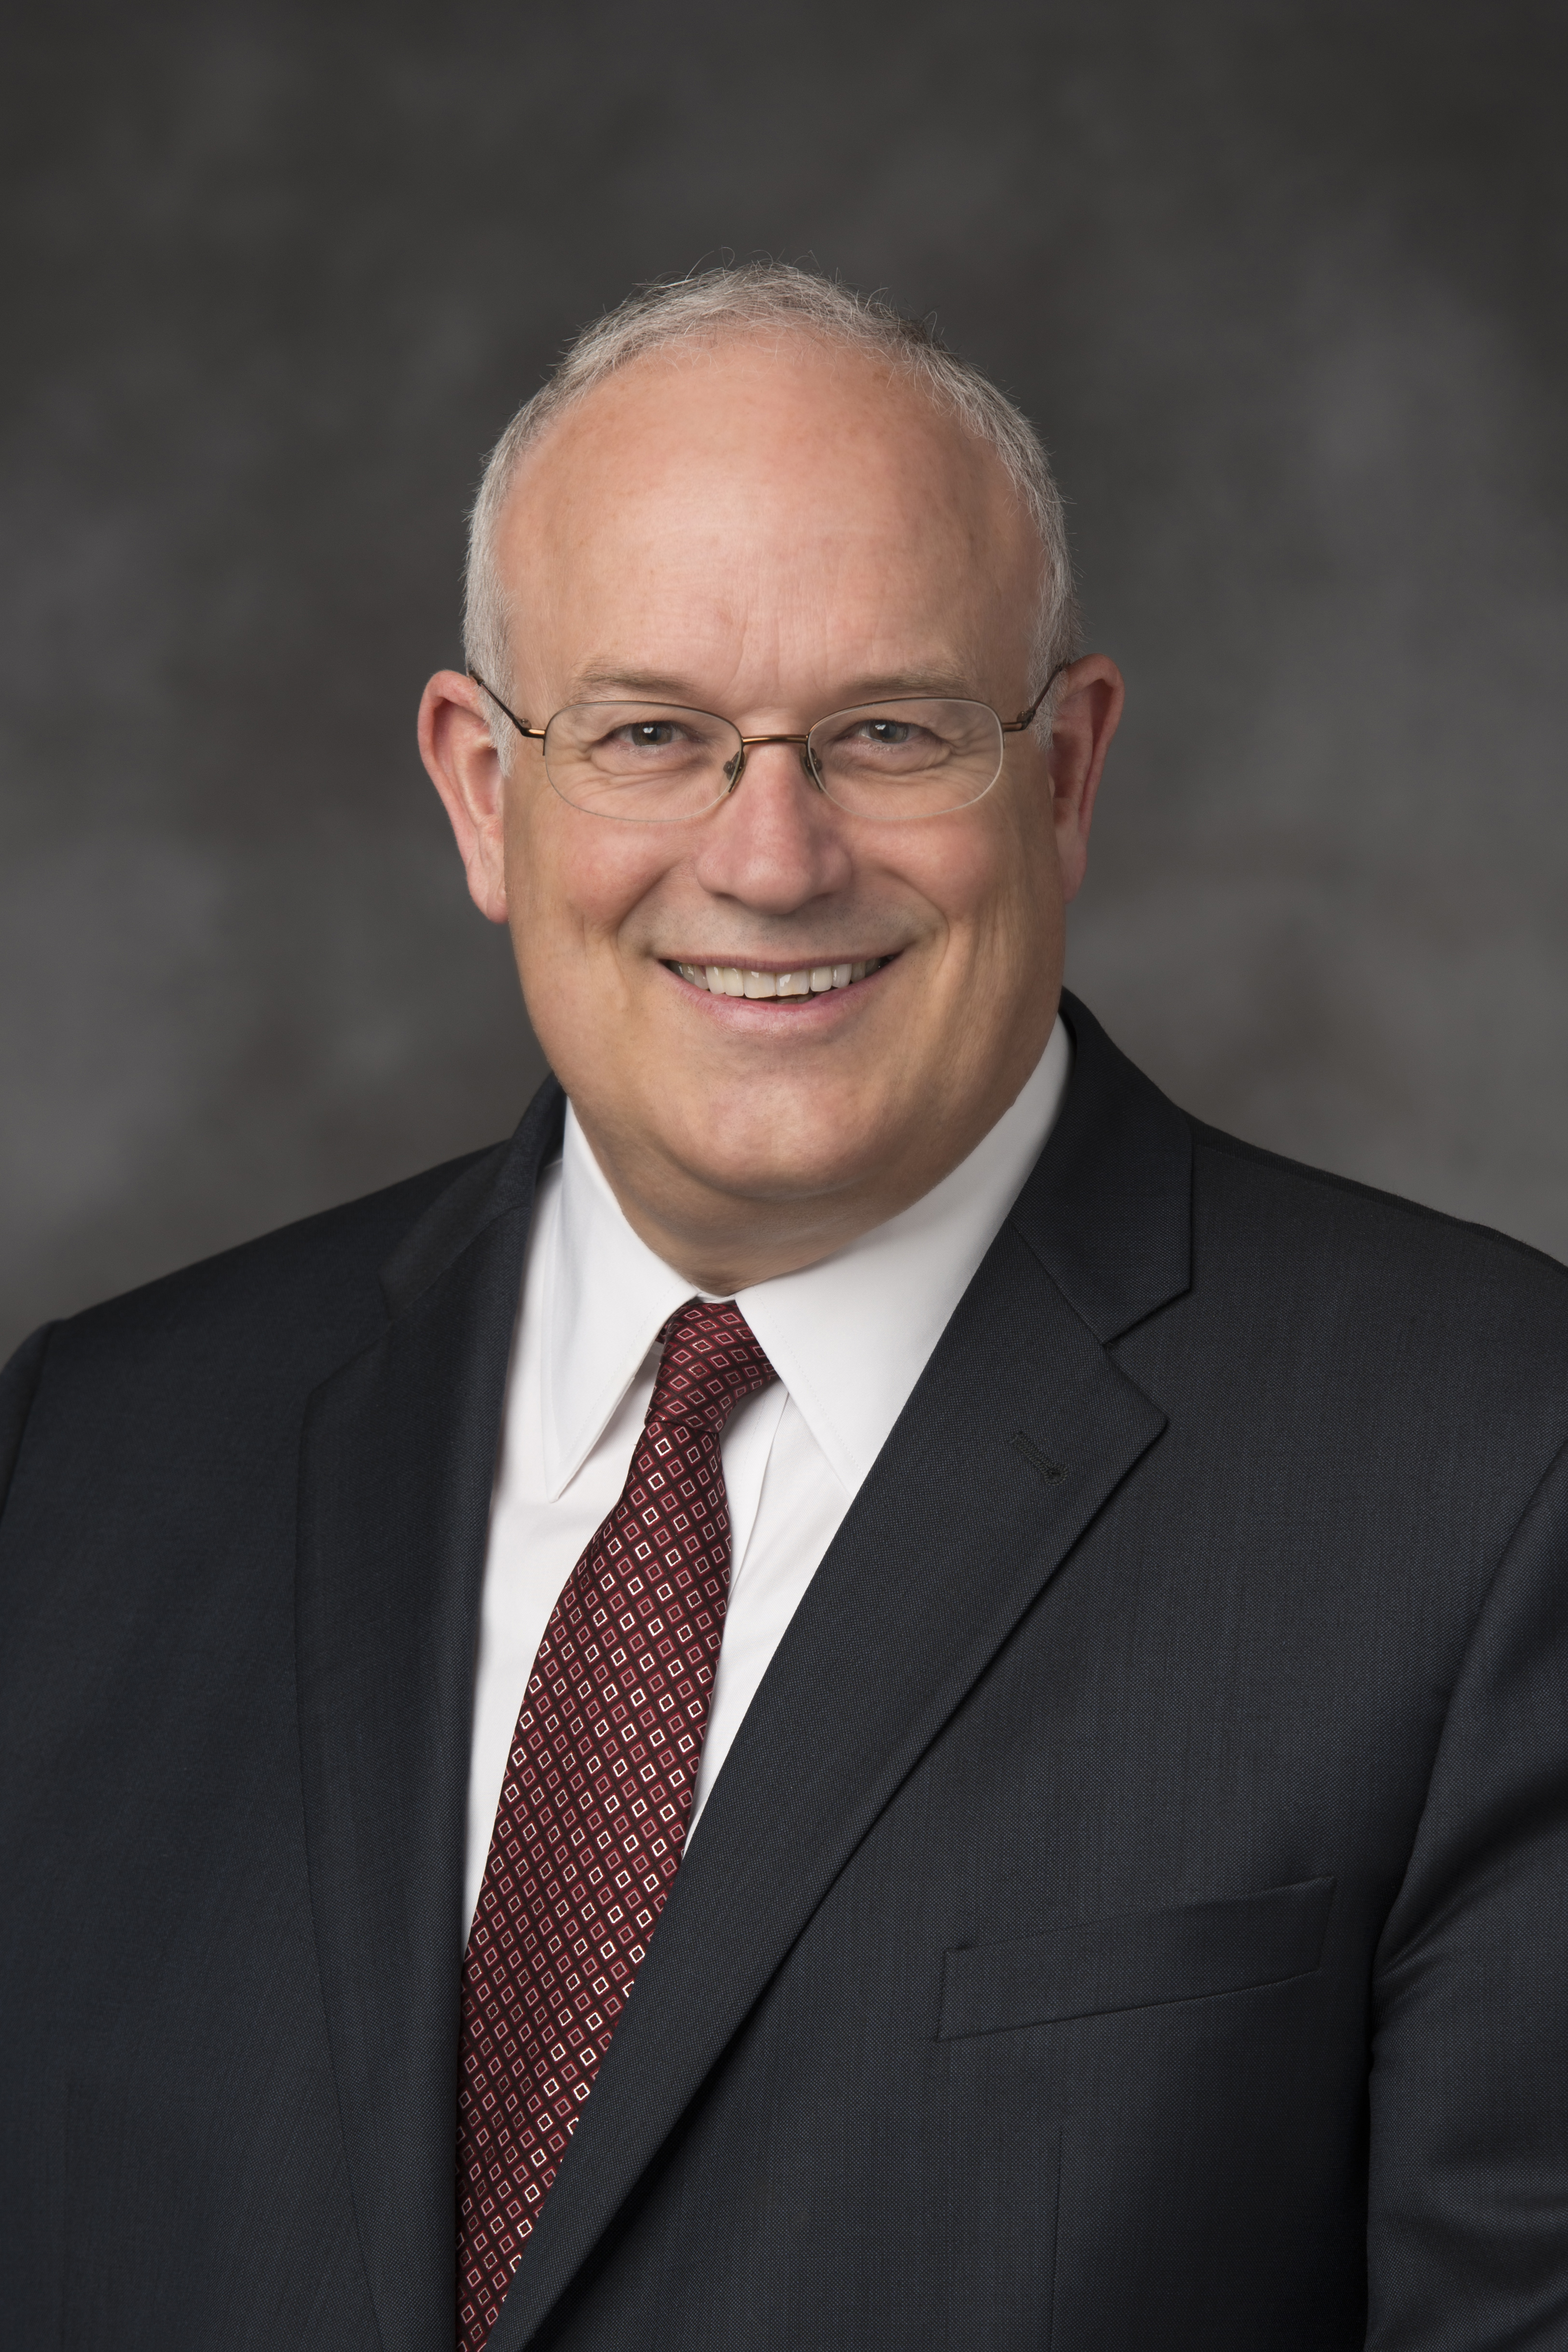 Elder Paul V. Johnson, a General Authority Seventy, will return to serve as Commissioner of the Church Educational System, a calling he previously held from 2008 to 2015.